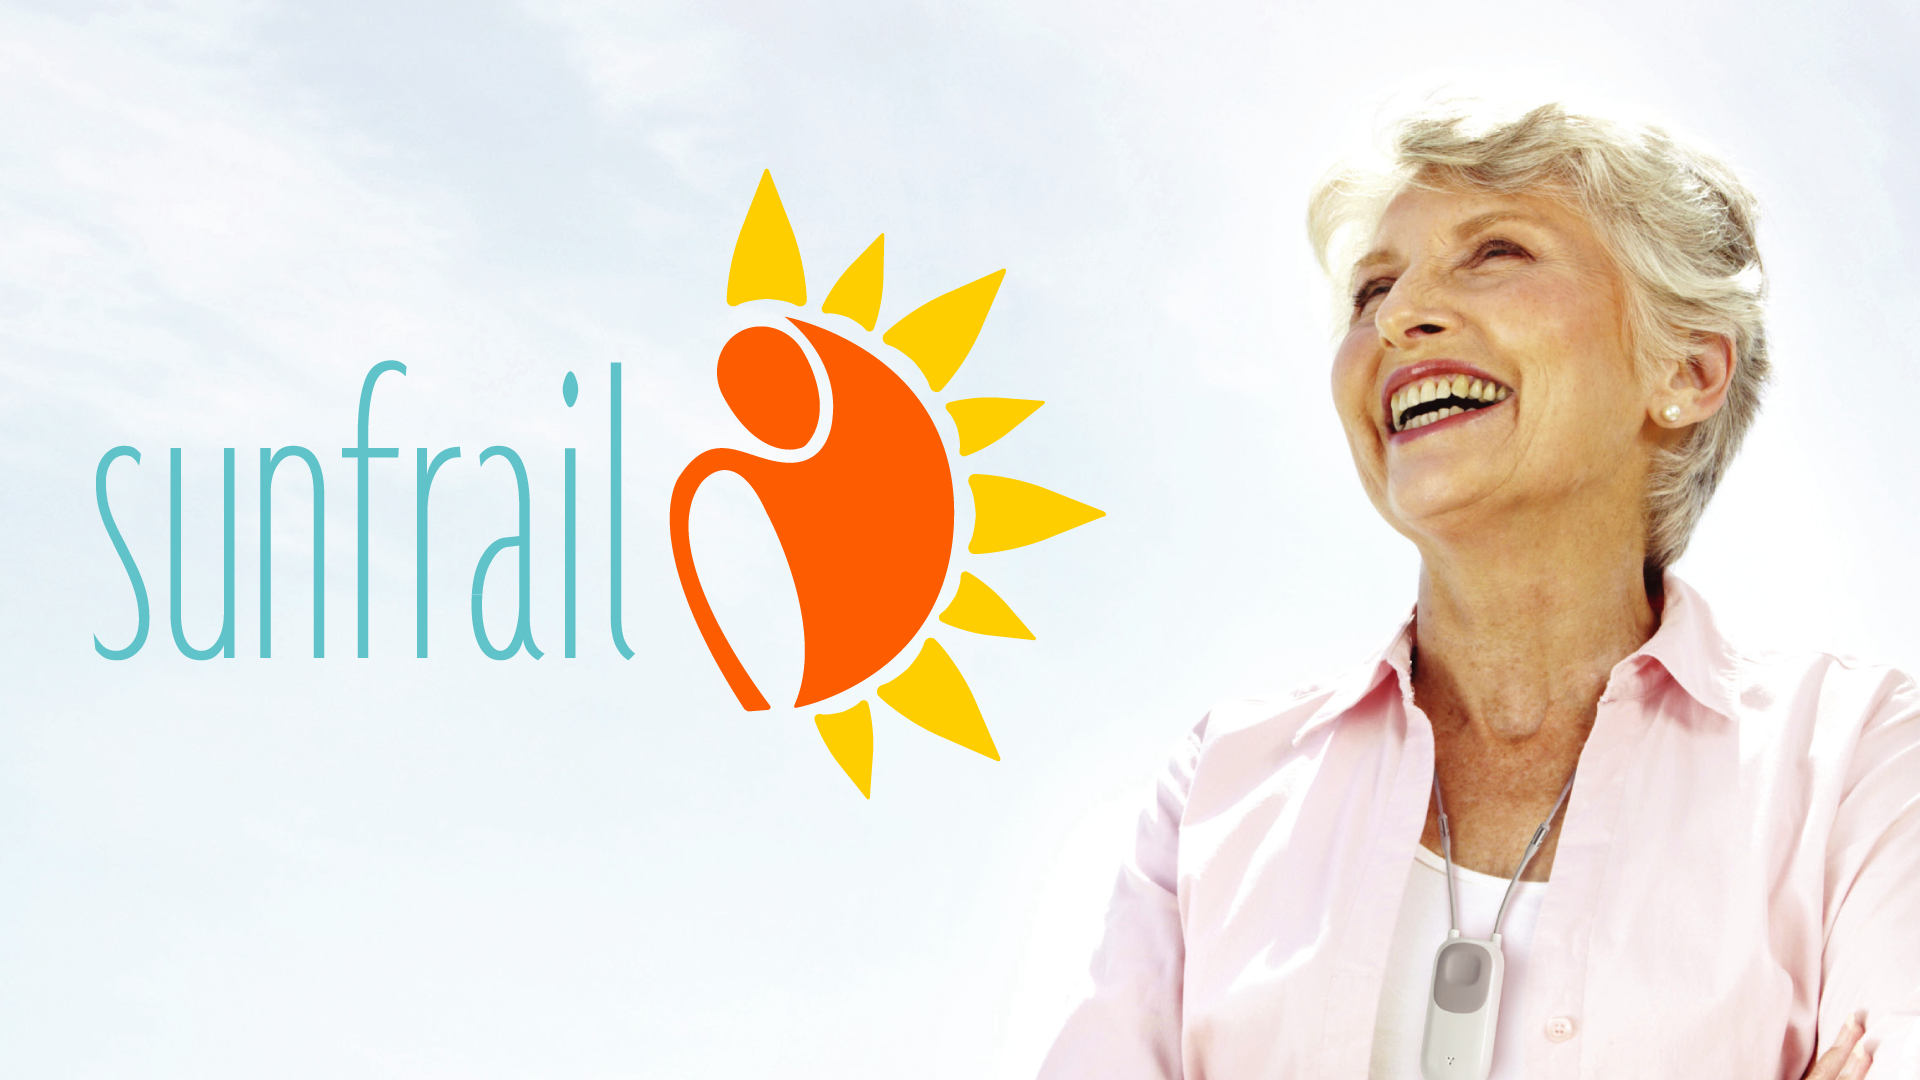 Sunfrail project logo